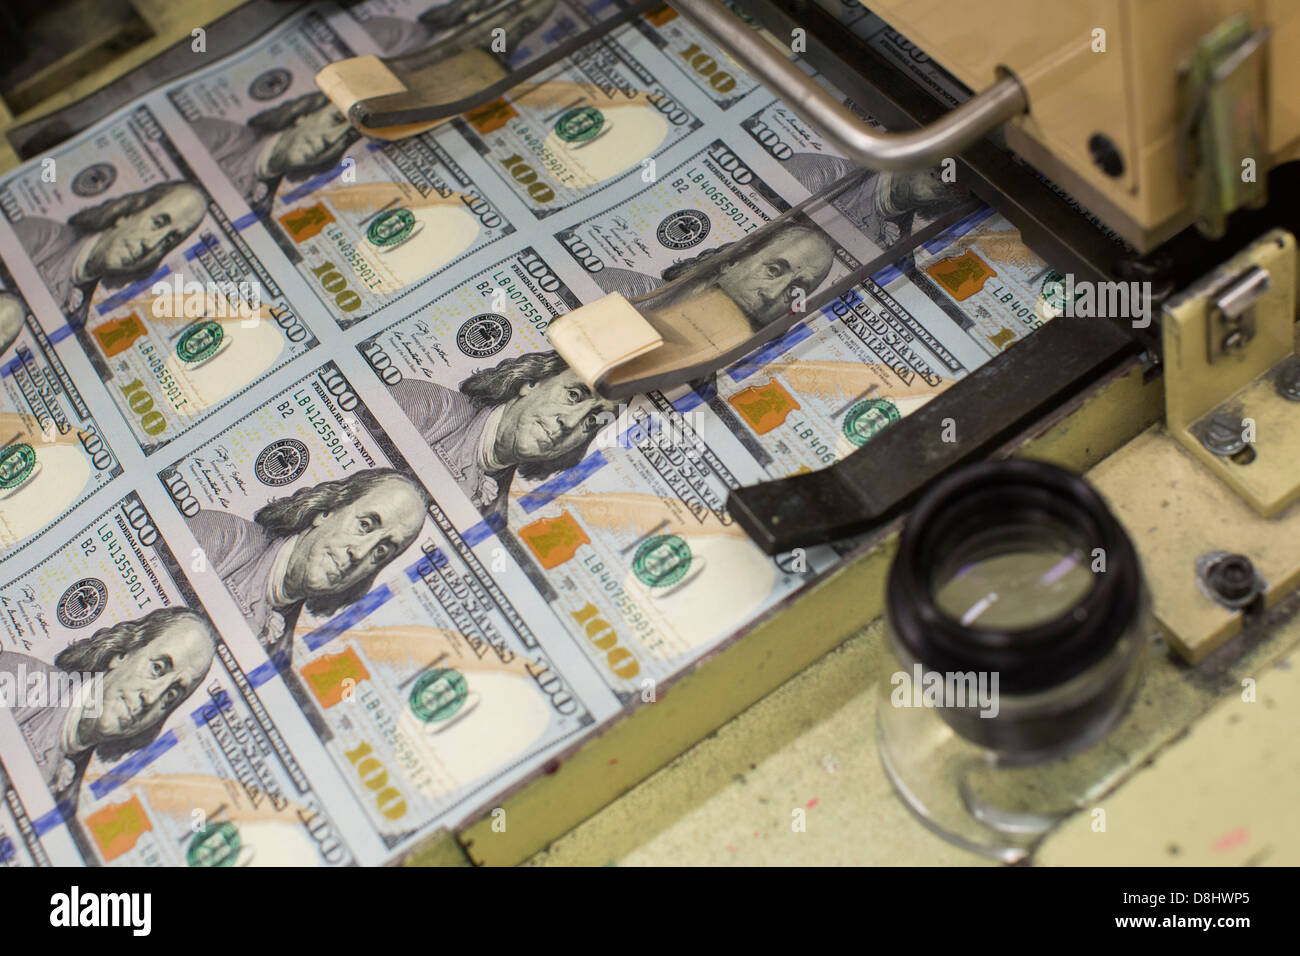 The newly redesigned $100 bill being printed at the Bureau of Engraving and Printing in Washington, DC. - Stock Image